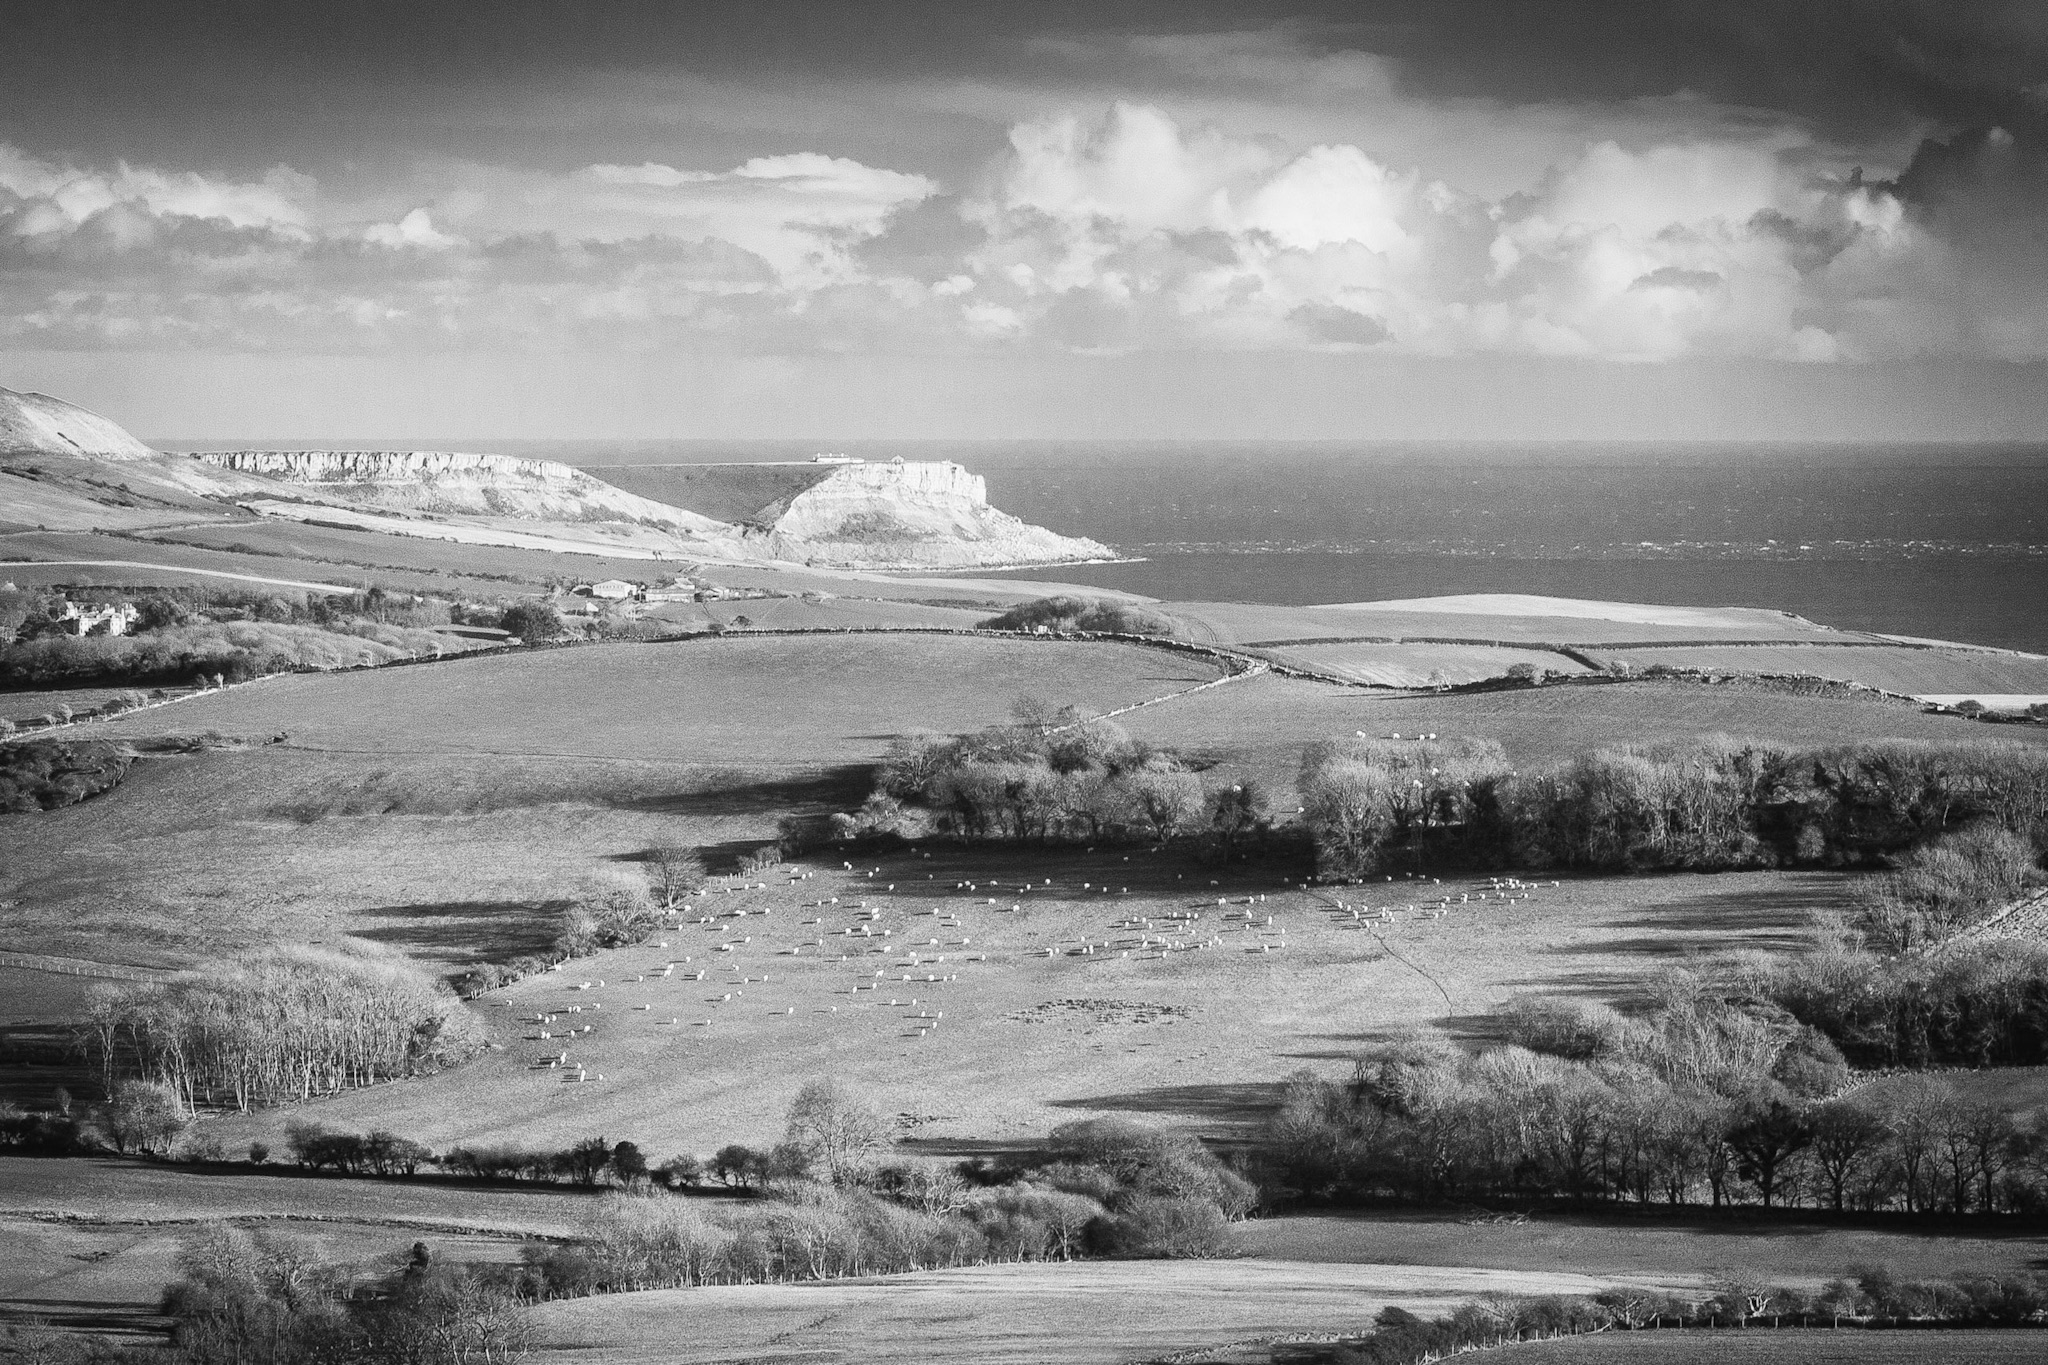 The Dorset landscape in black and white by Rick McEvoy